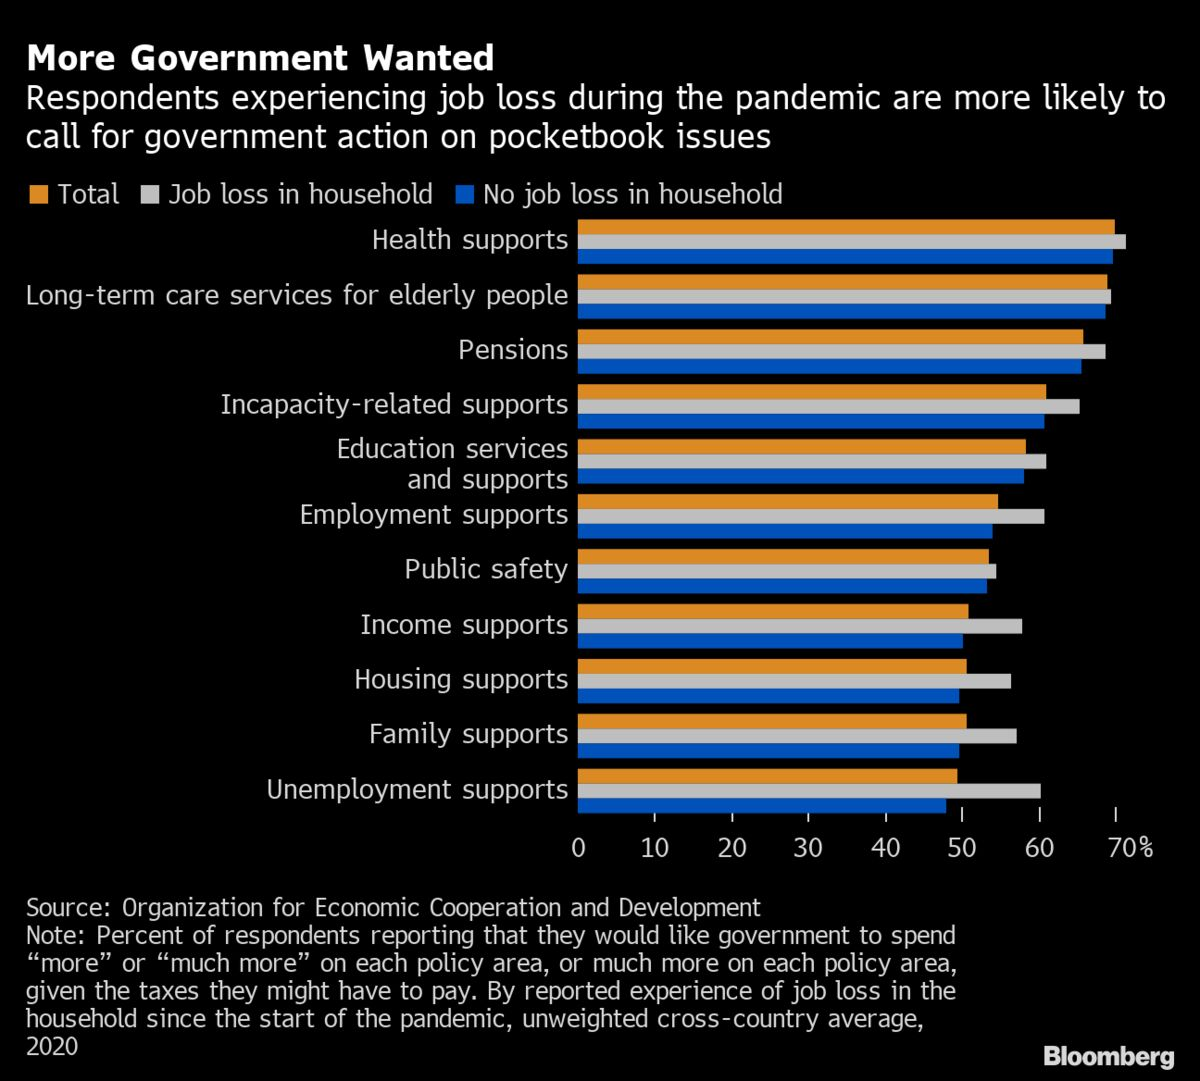 Pandemic Fuels Big Government Appetite Even If It Means More Tax